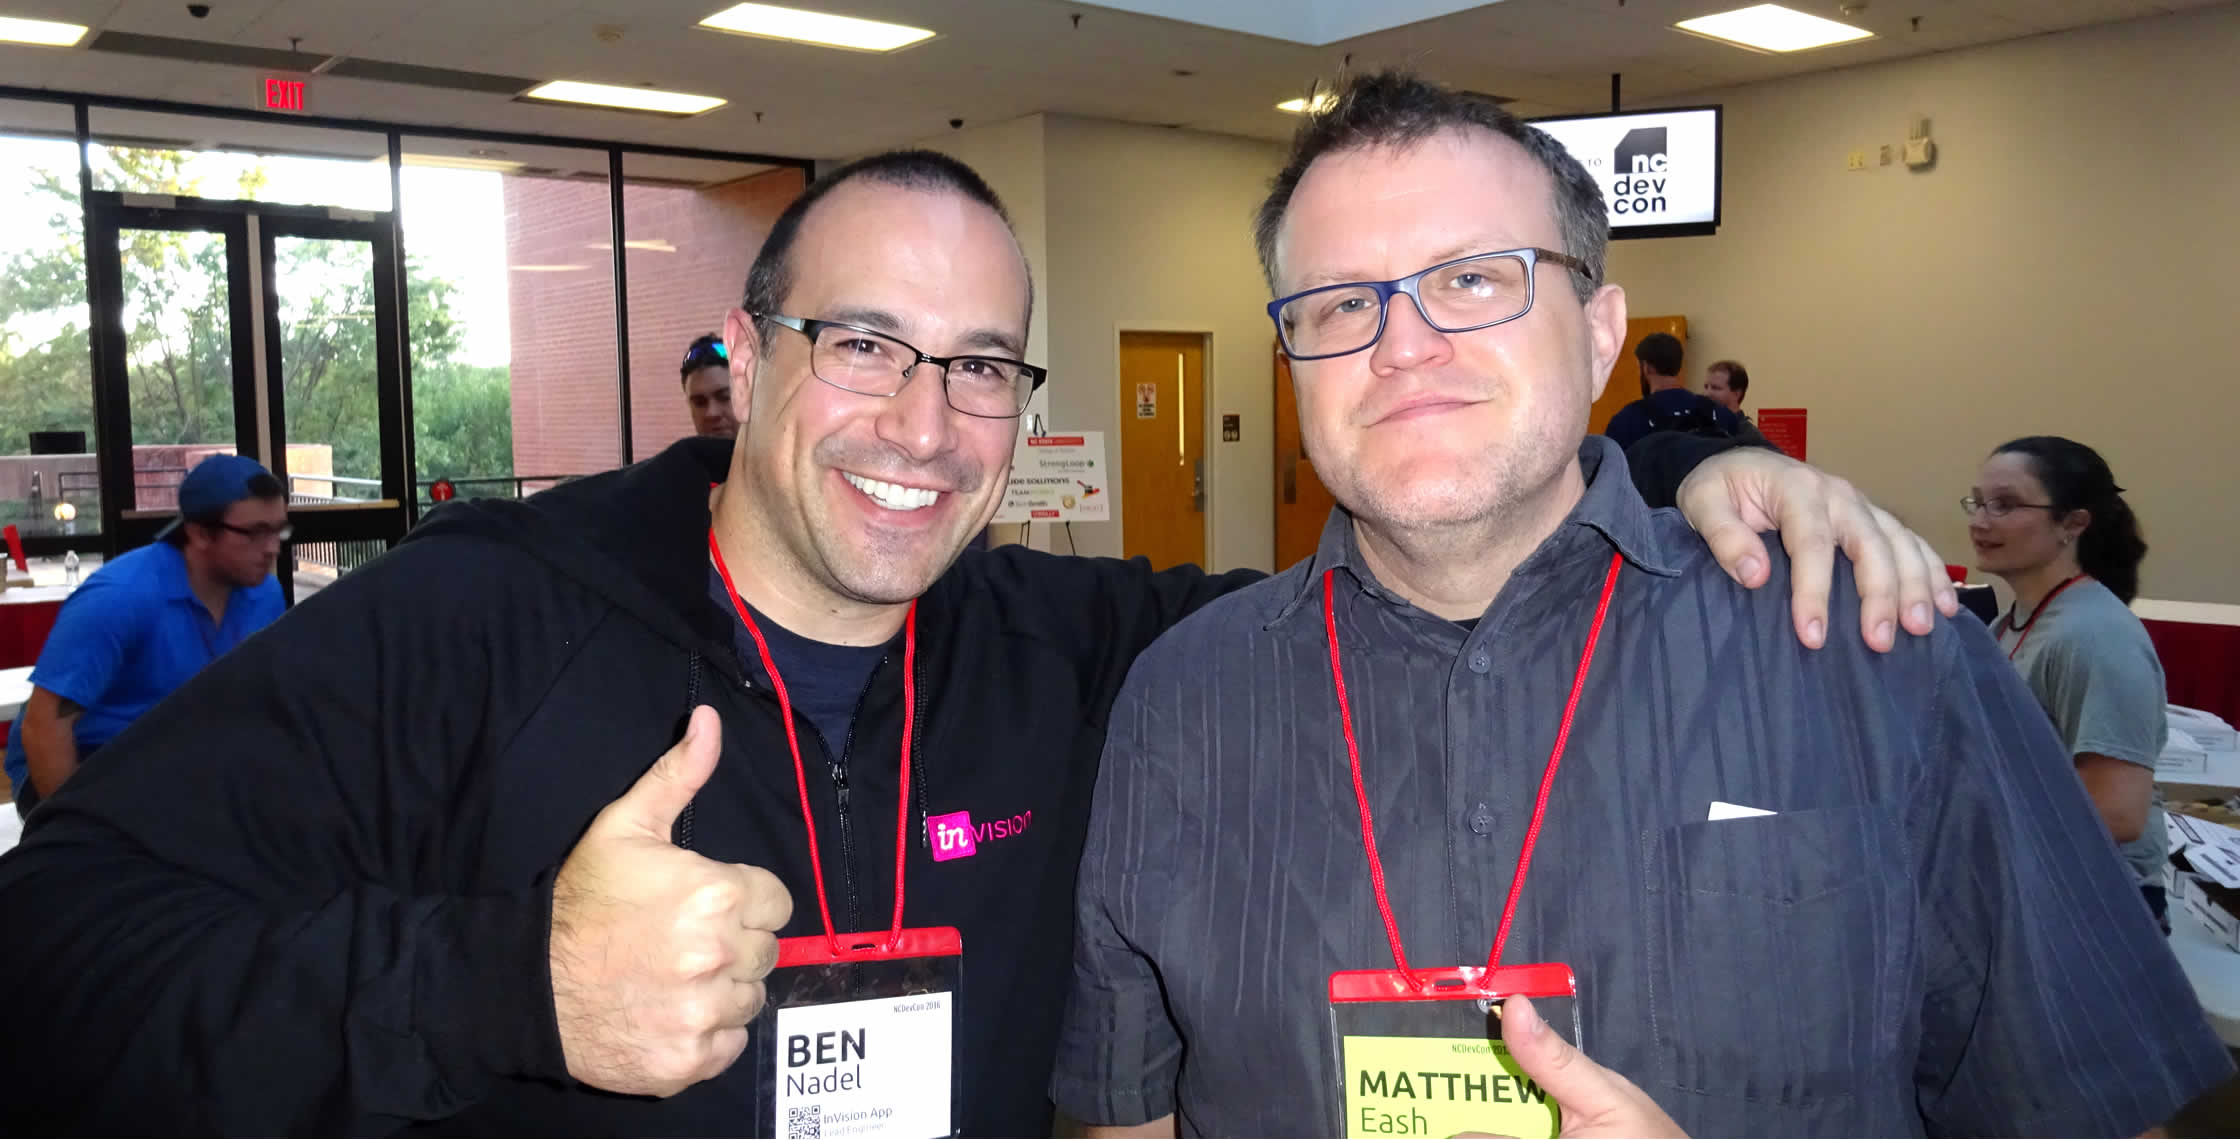 Ben Nadel at NCDevCon 2016 (Raleigh, NC) with: Matthew Eash